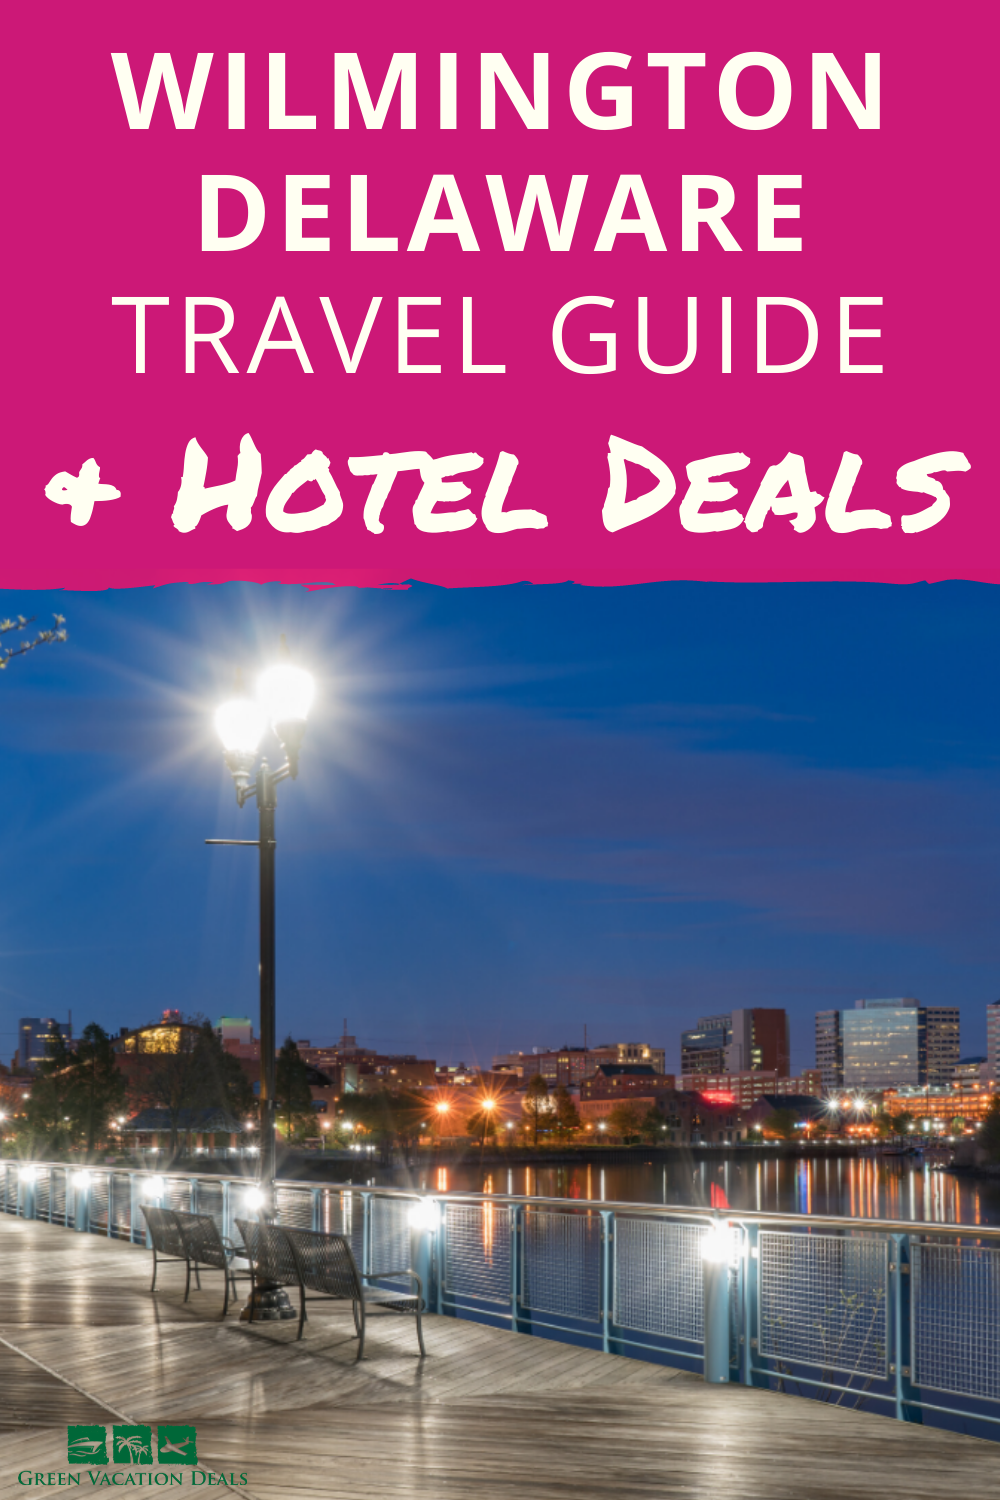 Travel guide for Wilmington, Delaware. Learn about sightseeing, activities (hiking, biking, parks, zoo, gardens, golf...) & how to save up to 71% off hotels. #Wilmington #Delaware #summertravel #summervacation #traveldeals #hoteldeals #hotelsale #travelsale #travelhacks #art #citybreak #BrandywinePark #BrandywineZoo #golf #tennis #biking